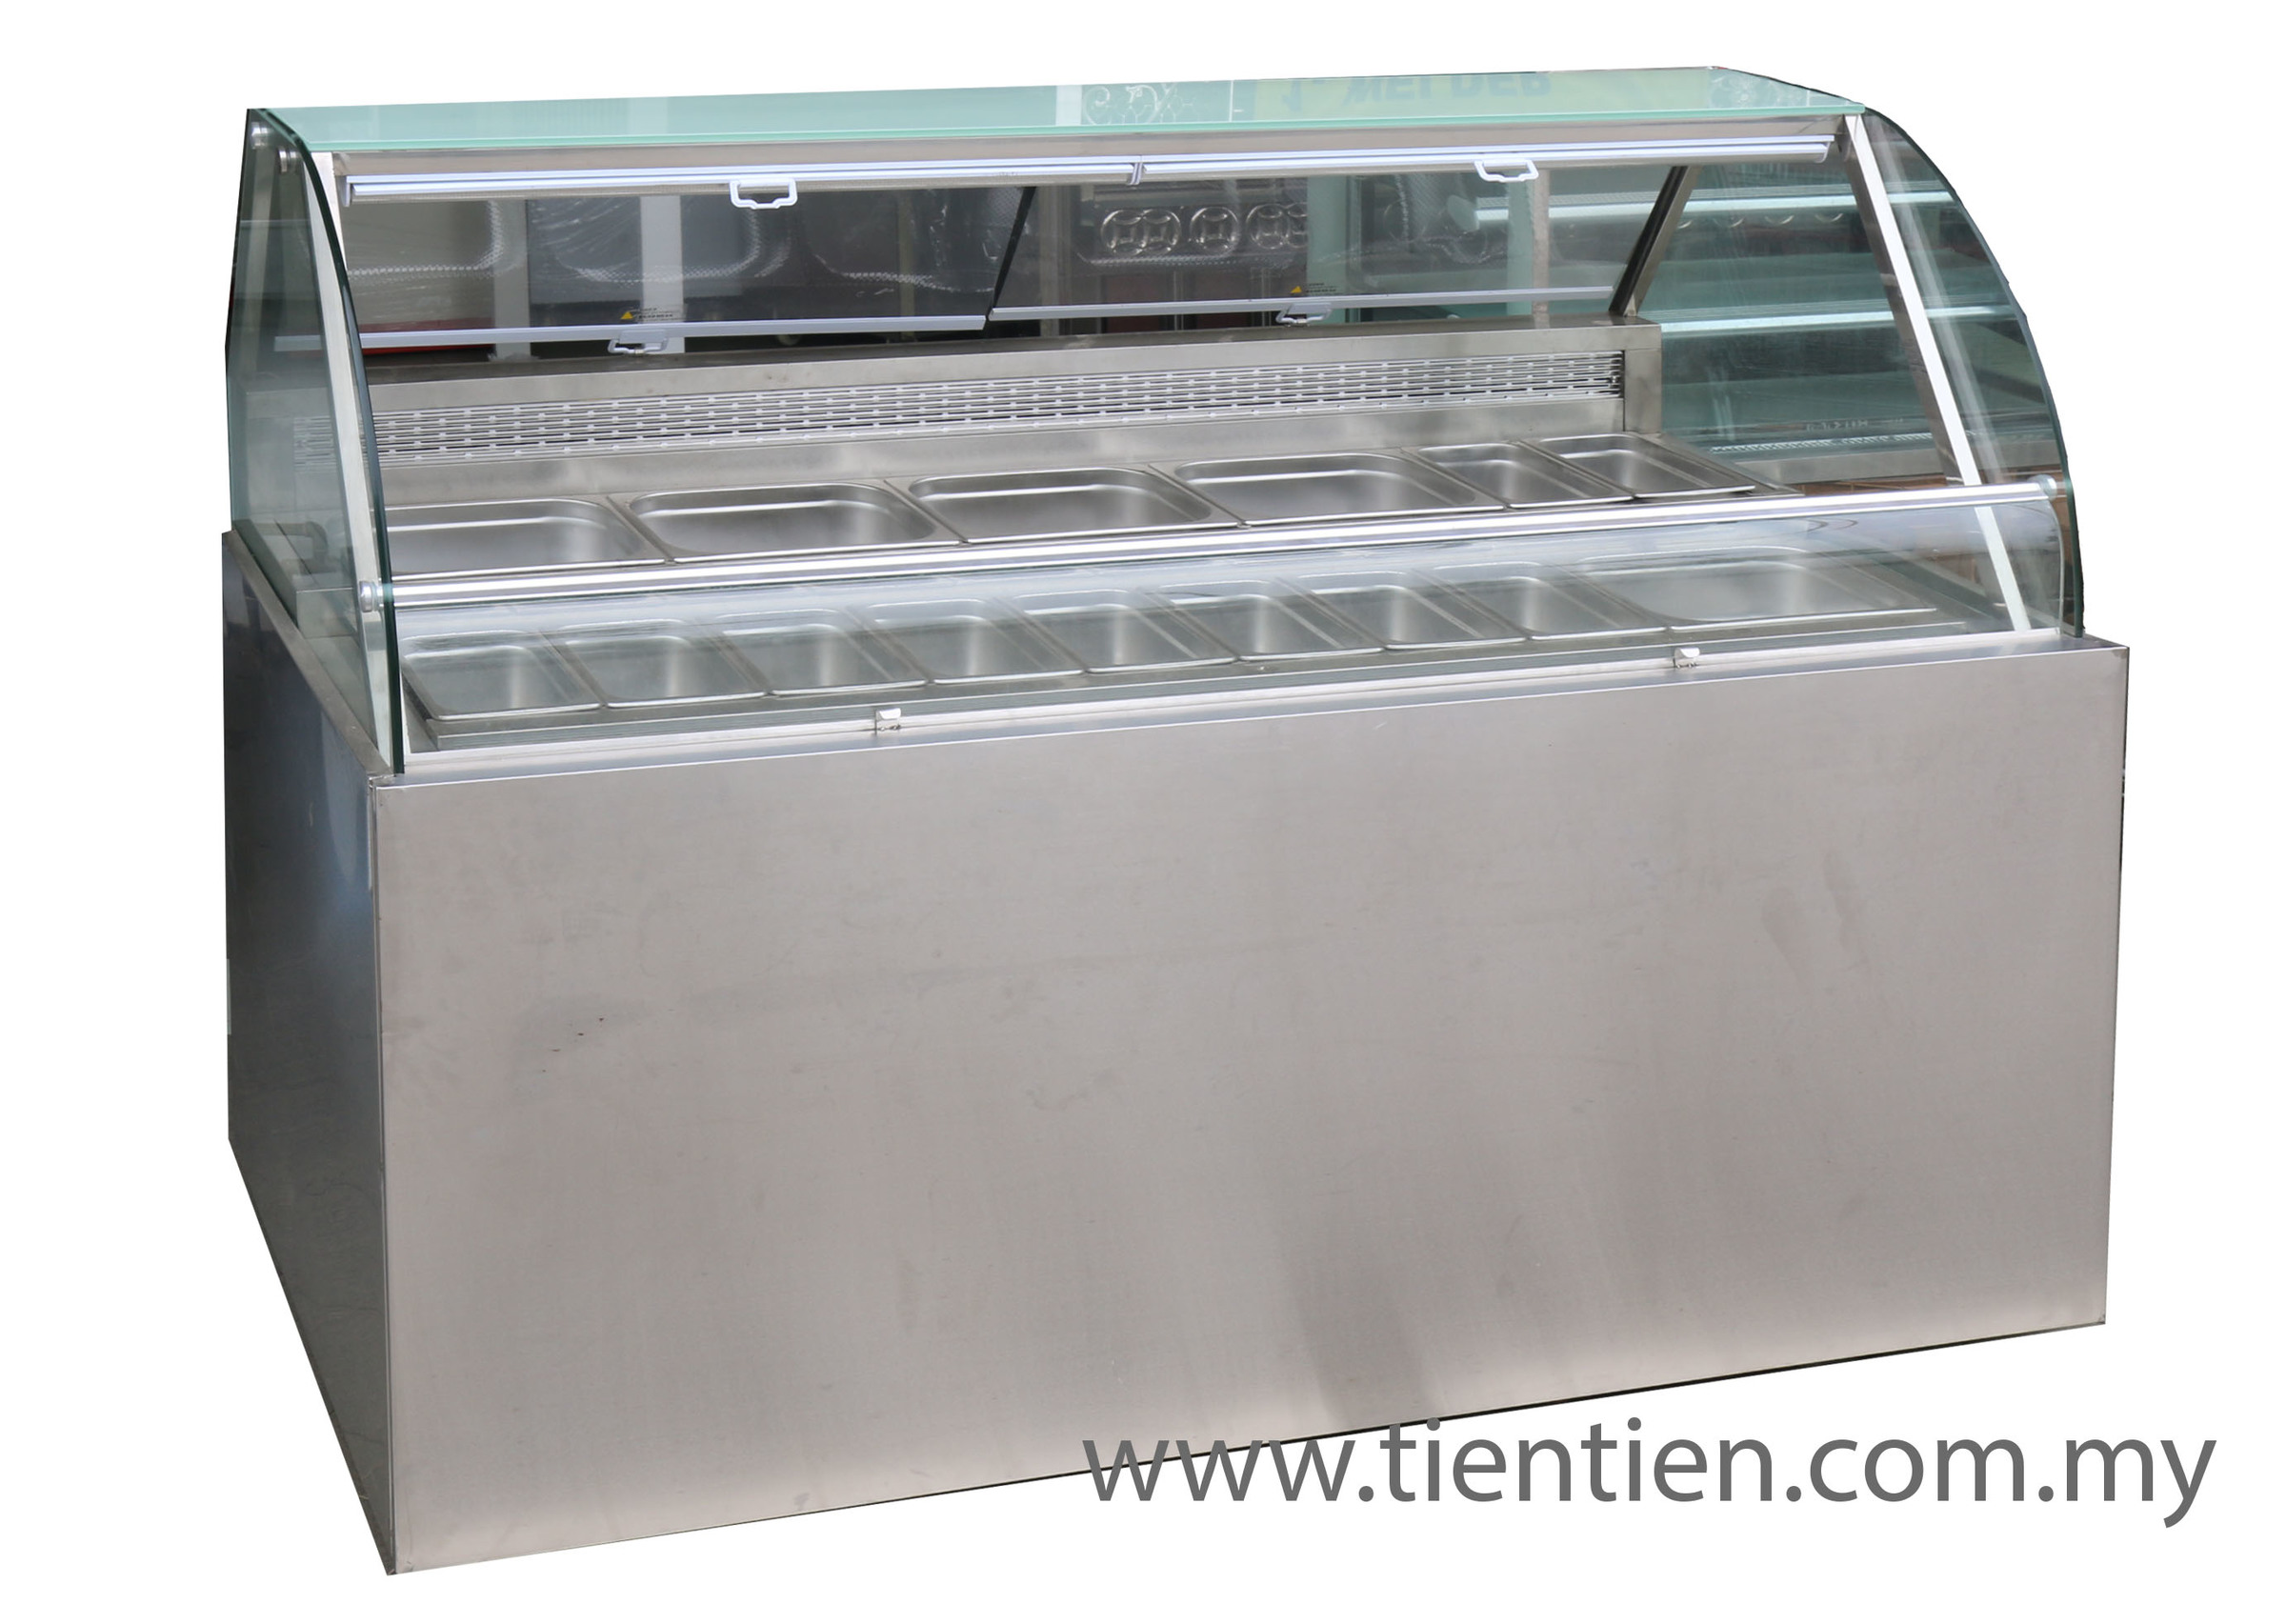 6FT SALAD COUNTER WITH NETTING COVER FILM TIEN TIEN MALAYSIA.jpg